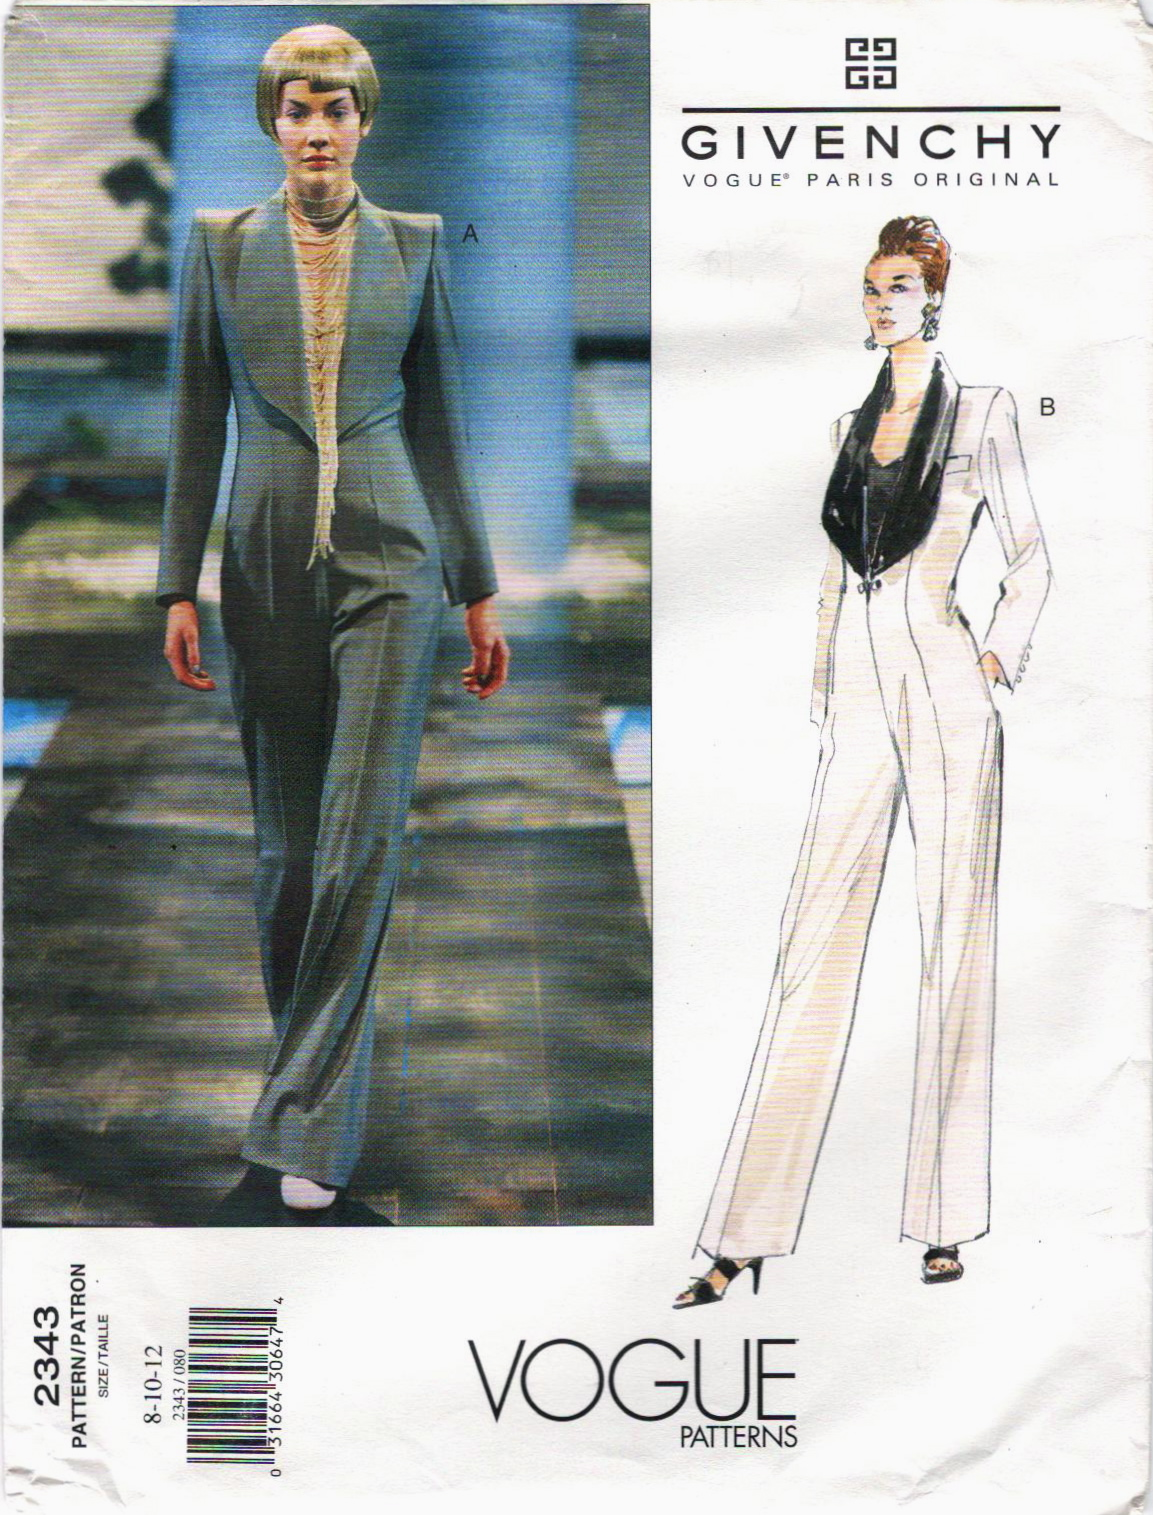 Alexander McQueen for Givenchy: Vogue Patterns, Part 2 ...